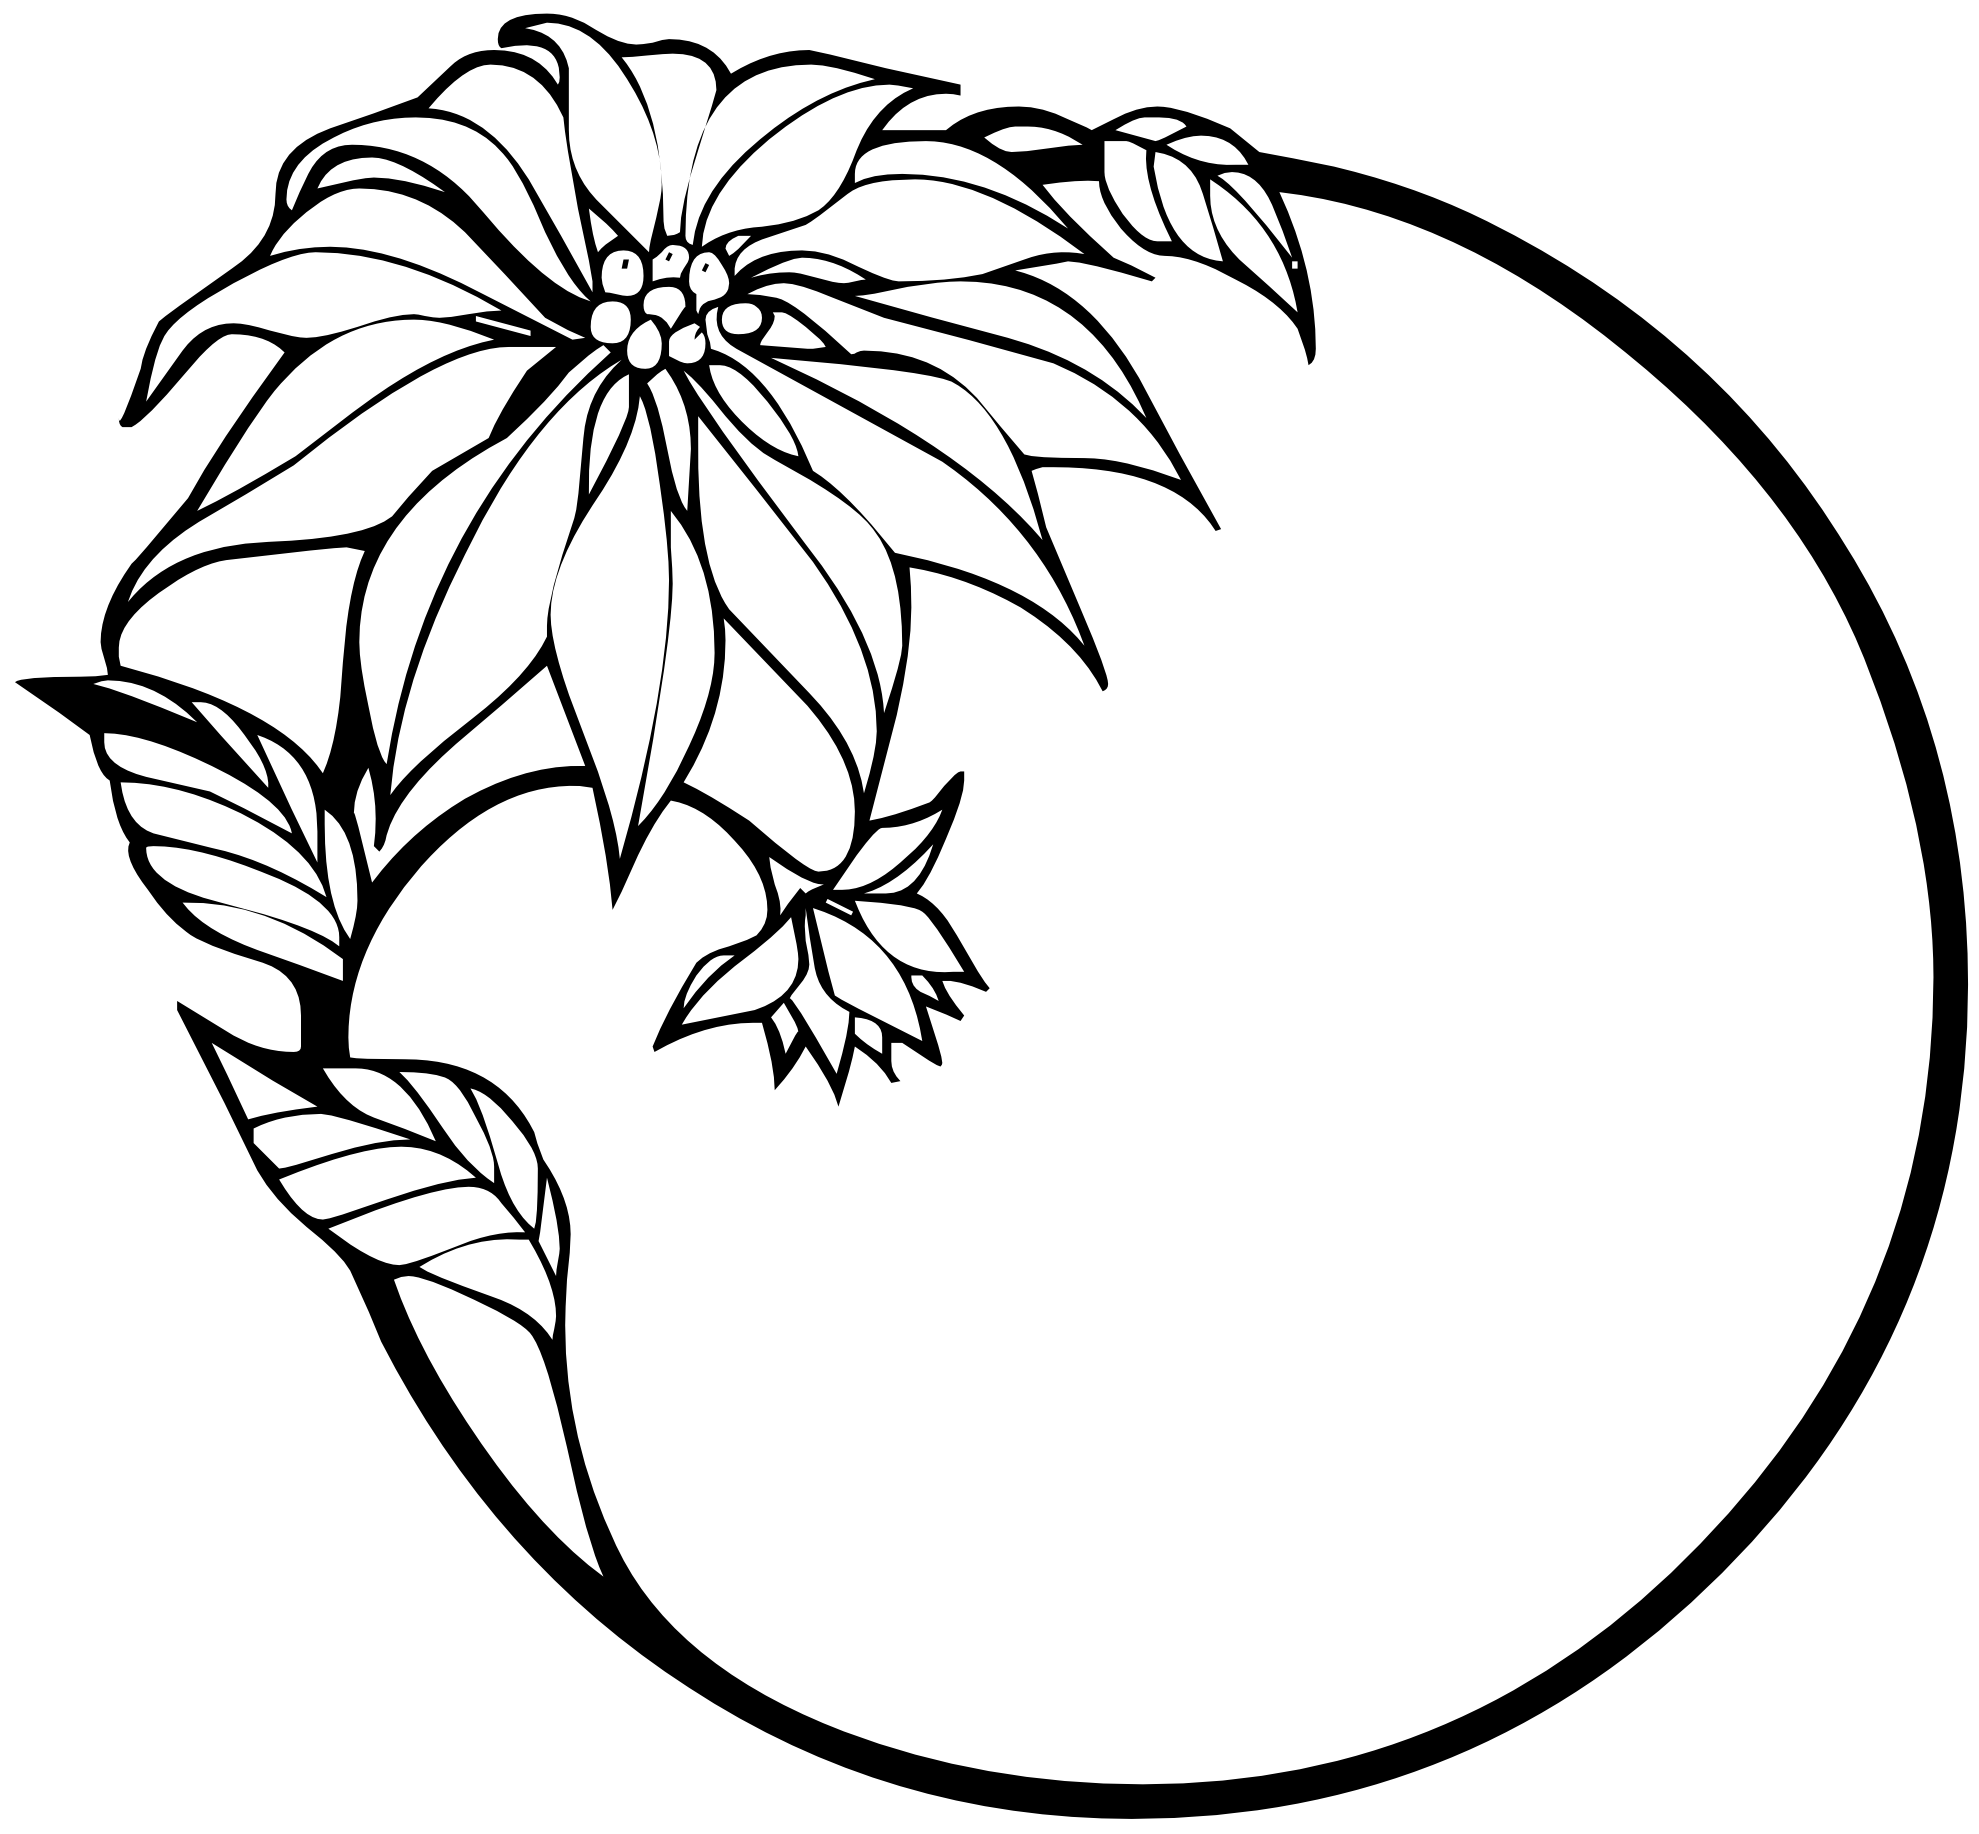 Line Art House Png : Flower black and white transparent png pictures free